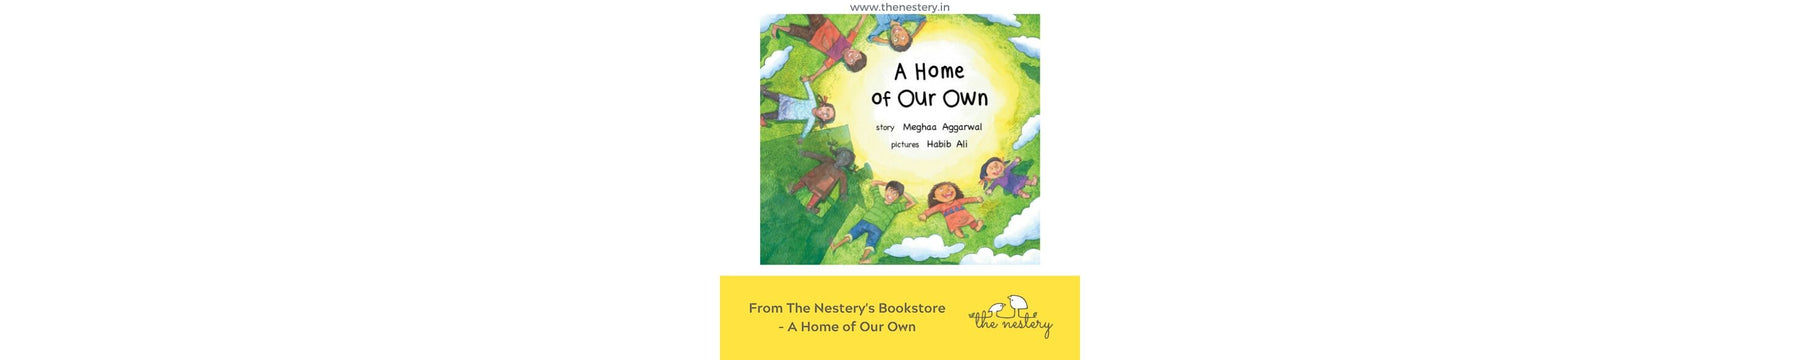 Book Review - A Home of Our Own